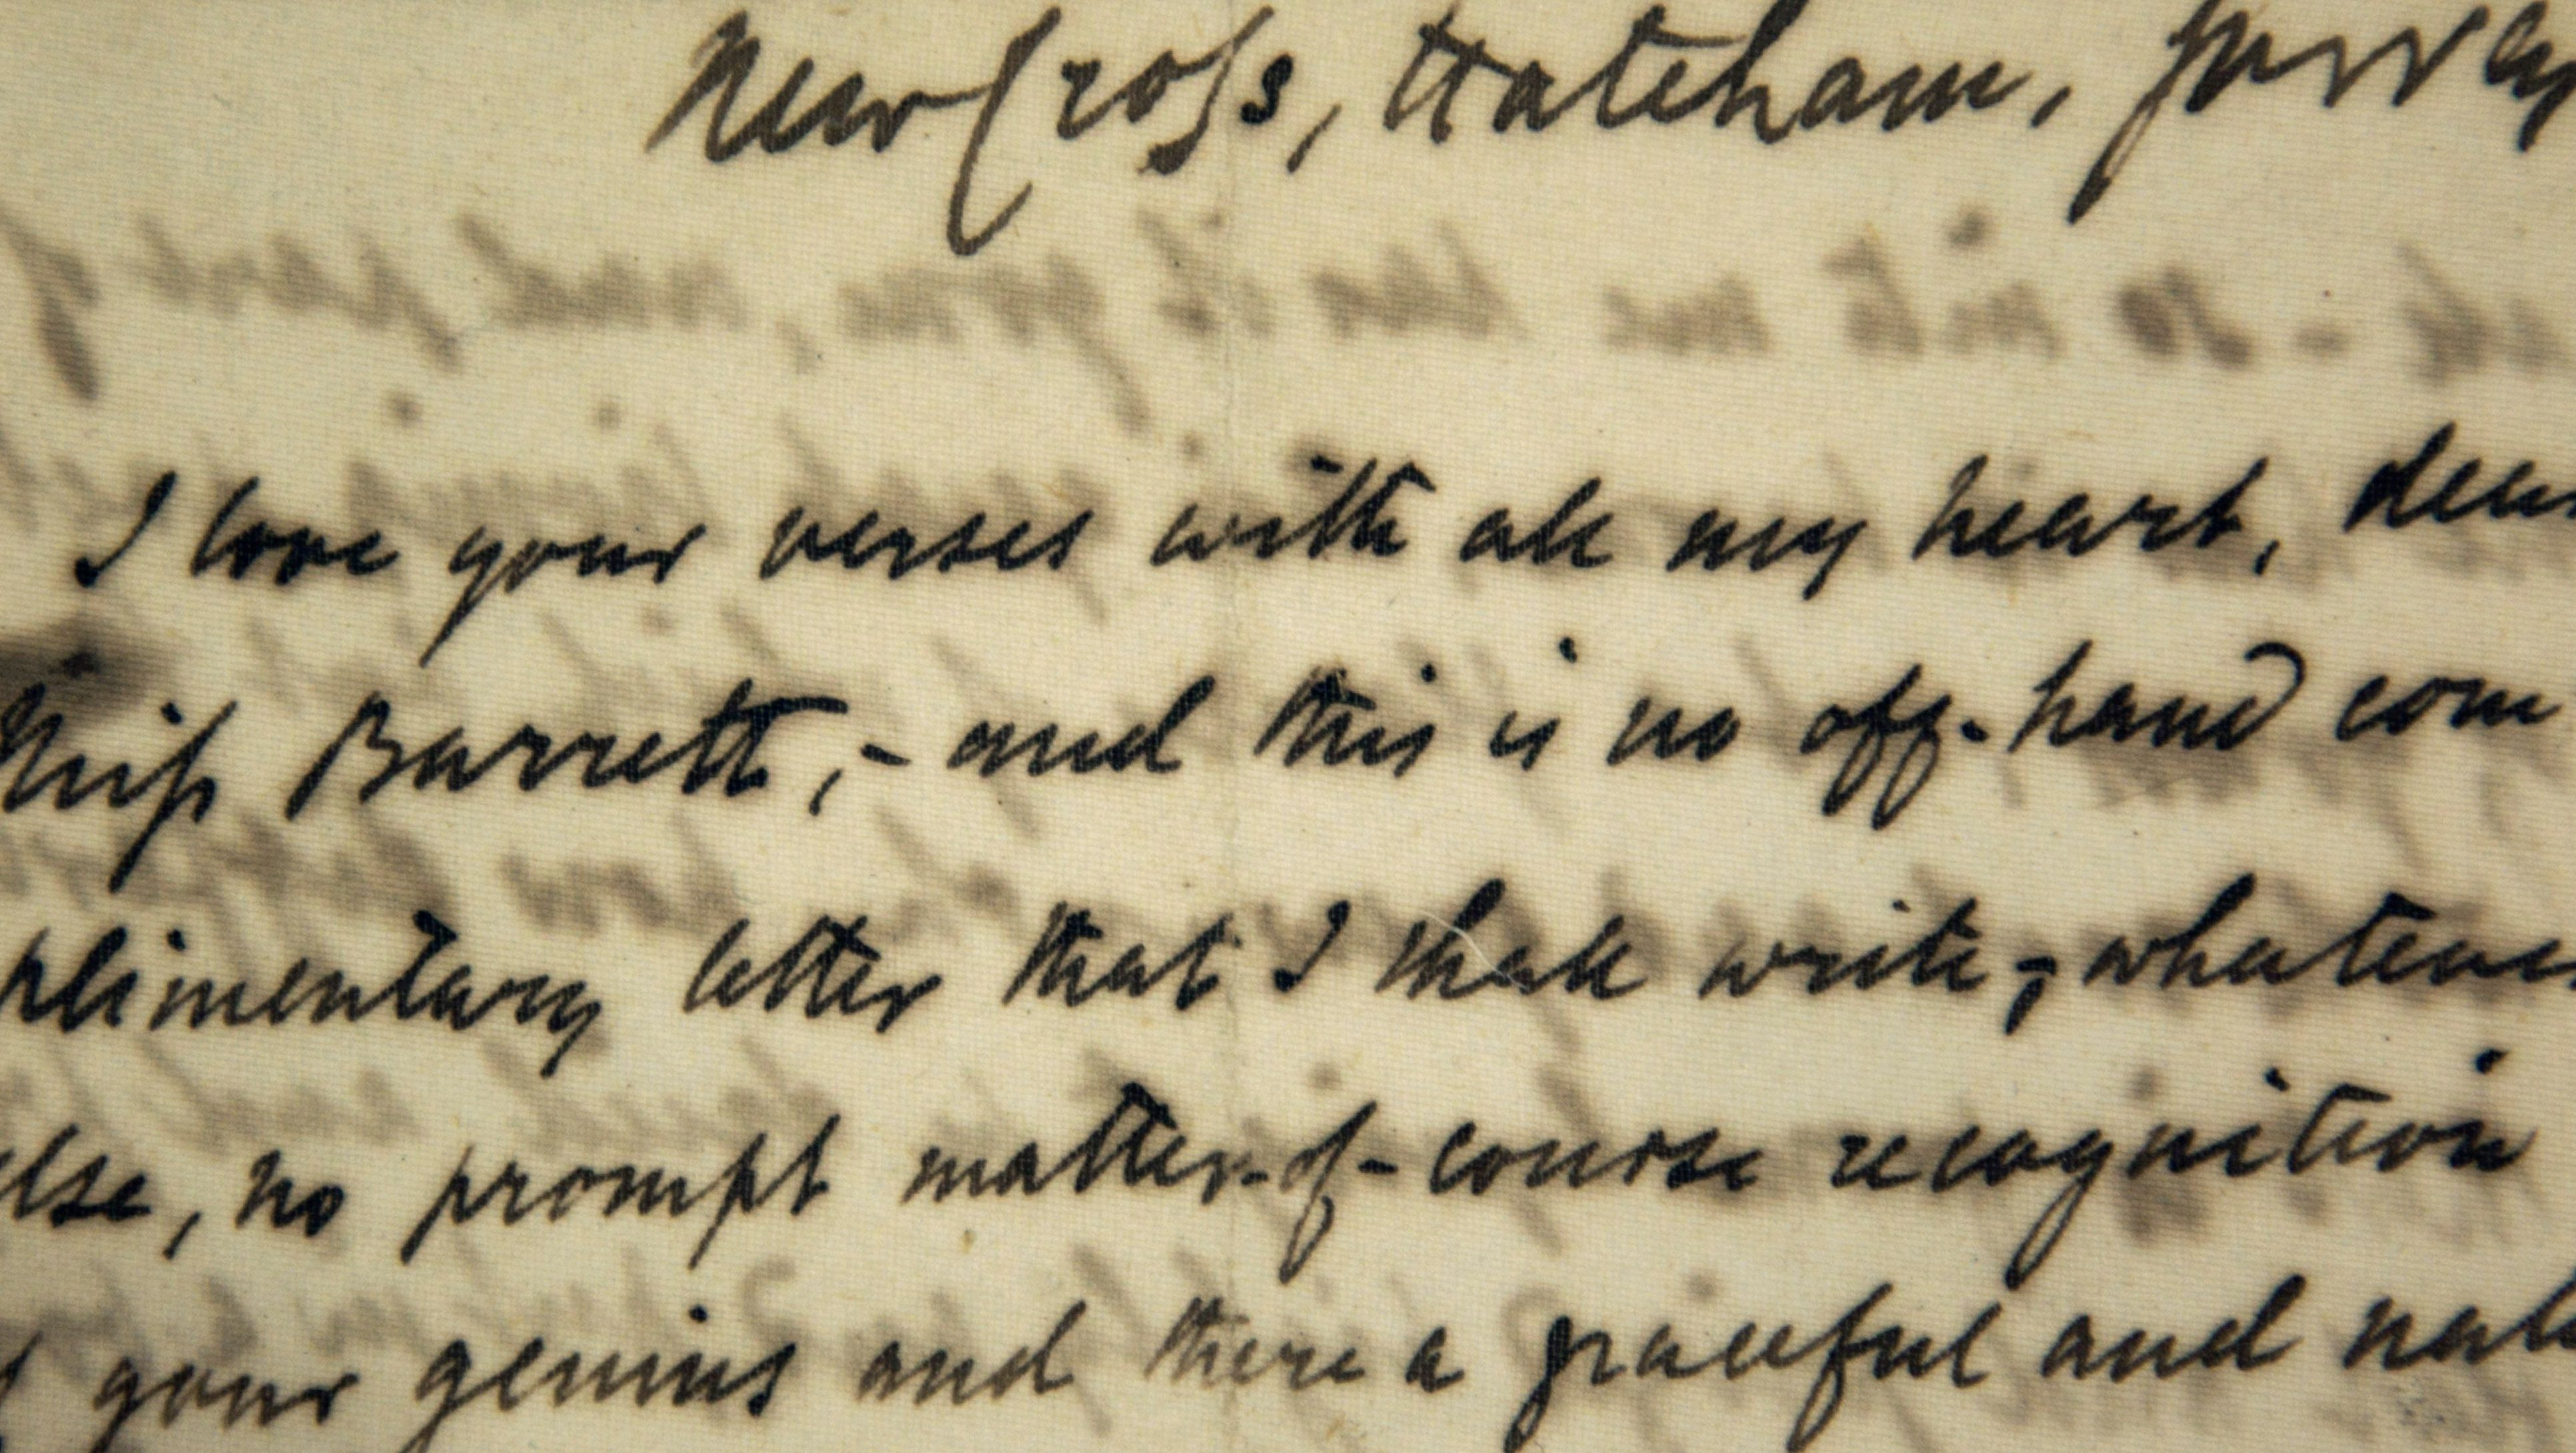 """This Friday, Feb. 10, 2012 photo shows a detail of the first love letter sent by poet Robert Browning to poet Elizabeth Barrett in January of 1845, on display at the Margaret Clapp Library on the campus of Wellesley College, in Wellesley, Mass. The letter begins: """"I love your verses with all my heart, dear Miss Barrett."""" Beginning Valentine's Day Feb. 14, 2012 the famous love letters of Elizabeth Barrett and Robert Browning will be available on line as part of a digitization collaboration between Wellesley and Baylor University in Texas. (AP Photo/Steven Senne)"""